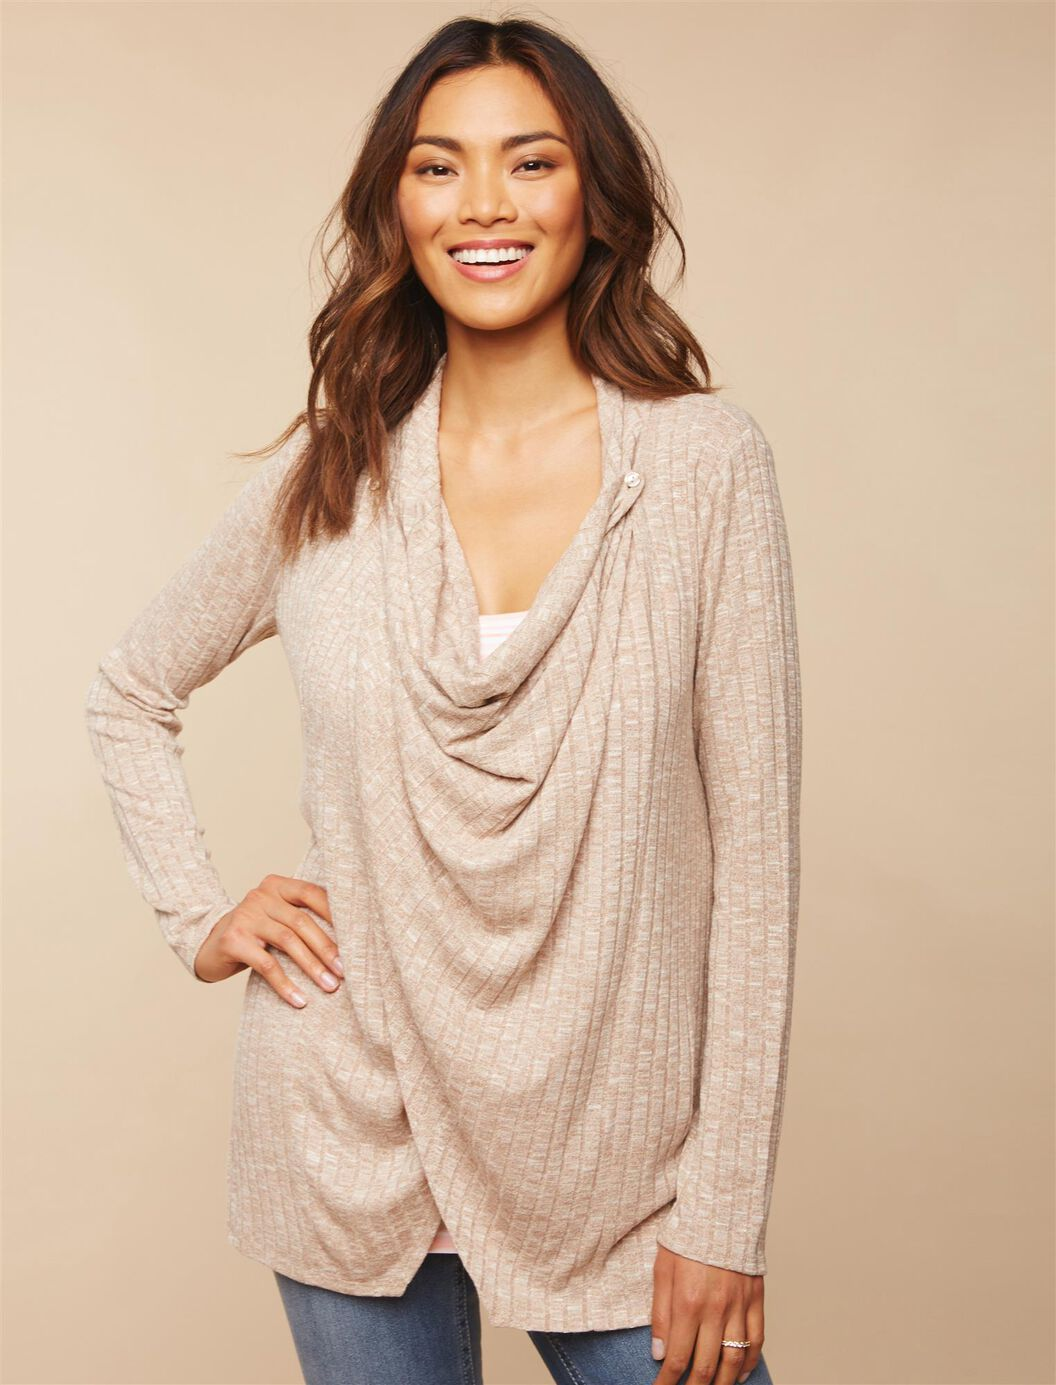 Pull Over 2 Button Closure Nursing Cardigan at Motherhood Maternity in Victor, NY | Tuggl